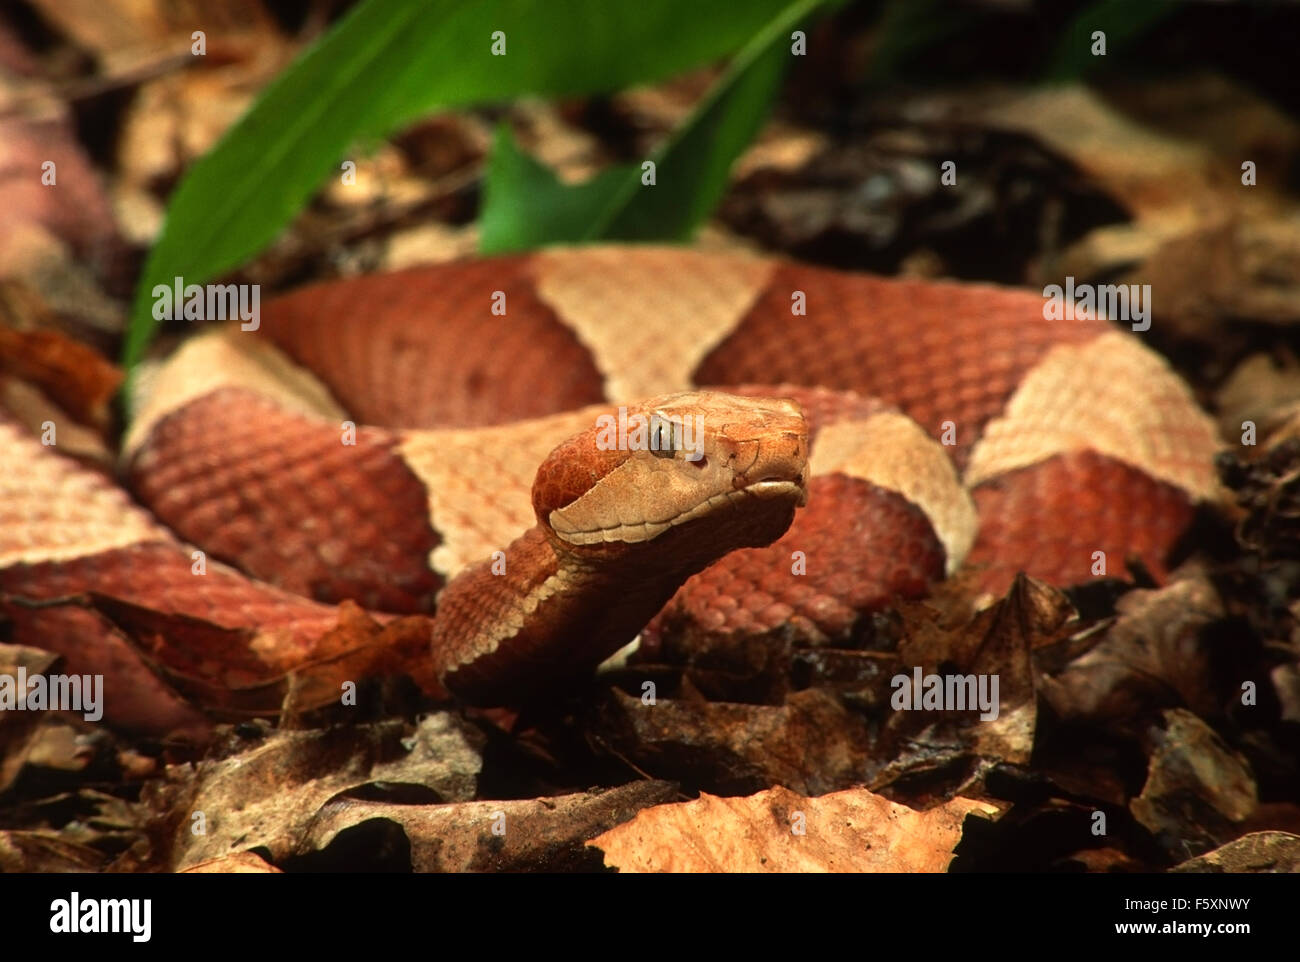 Broad-Banded Copperhead Snake (Agkistrodon contortrix) - Stock Image